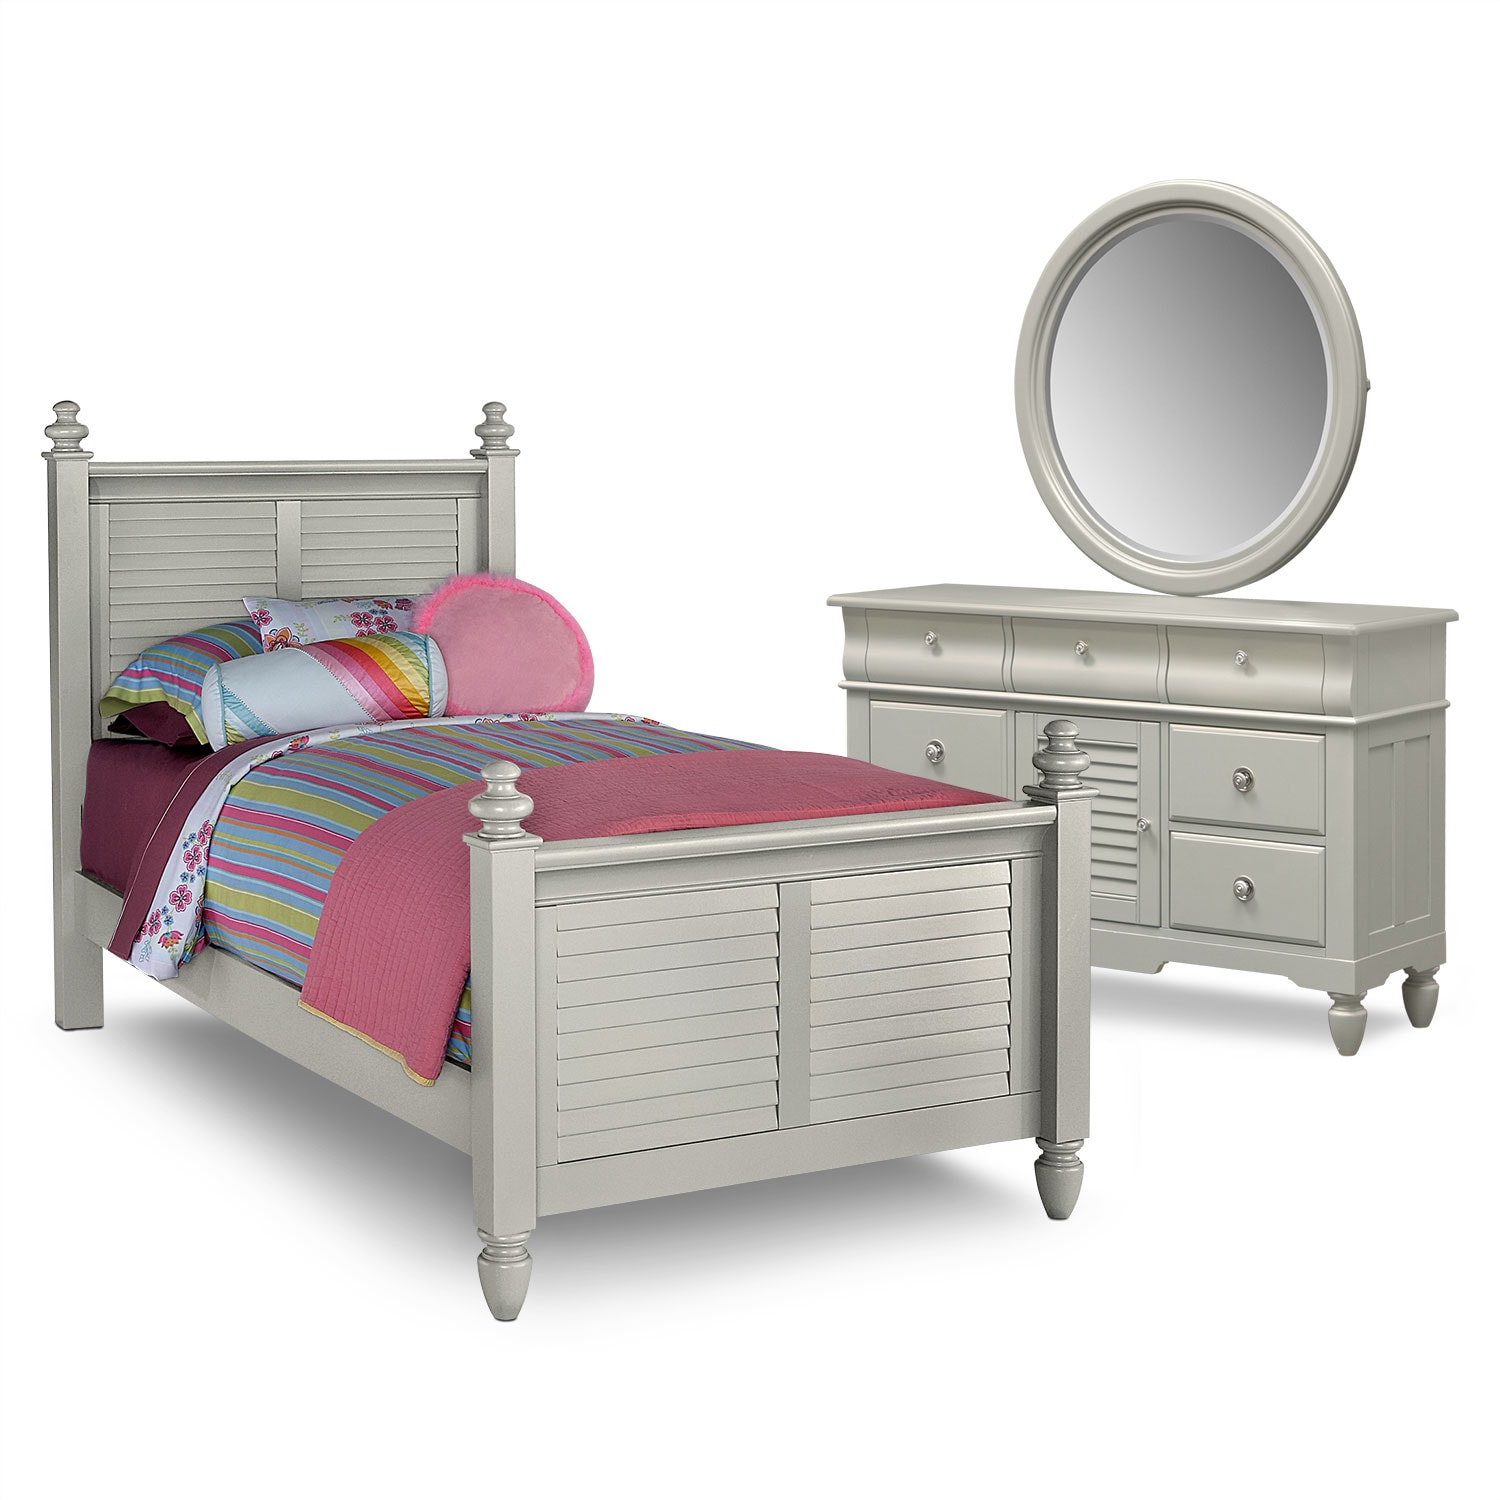 Seaside 5-Piece Twin Bedroom Set - Gray